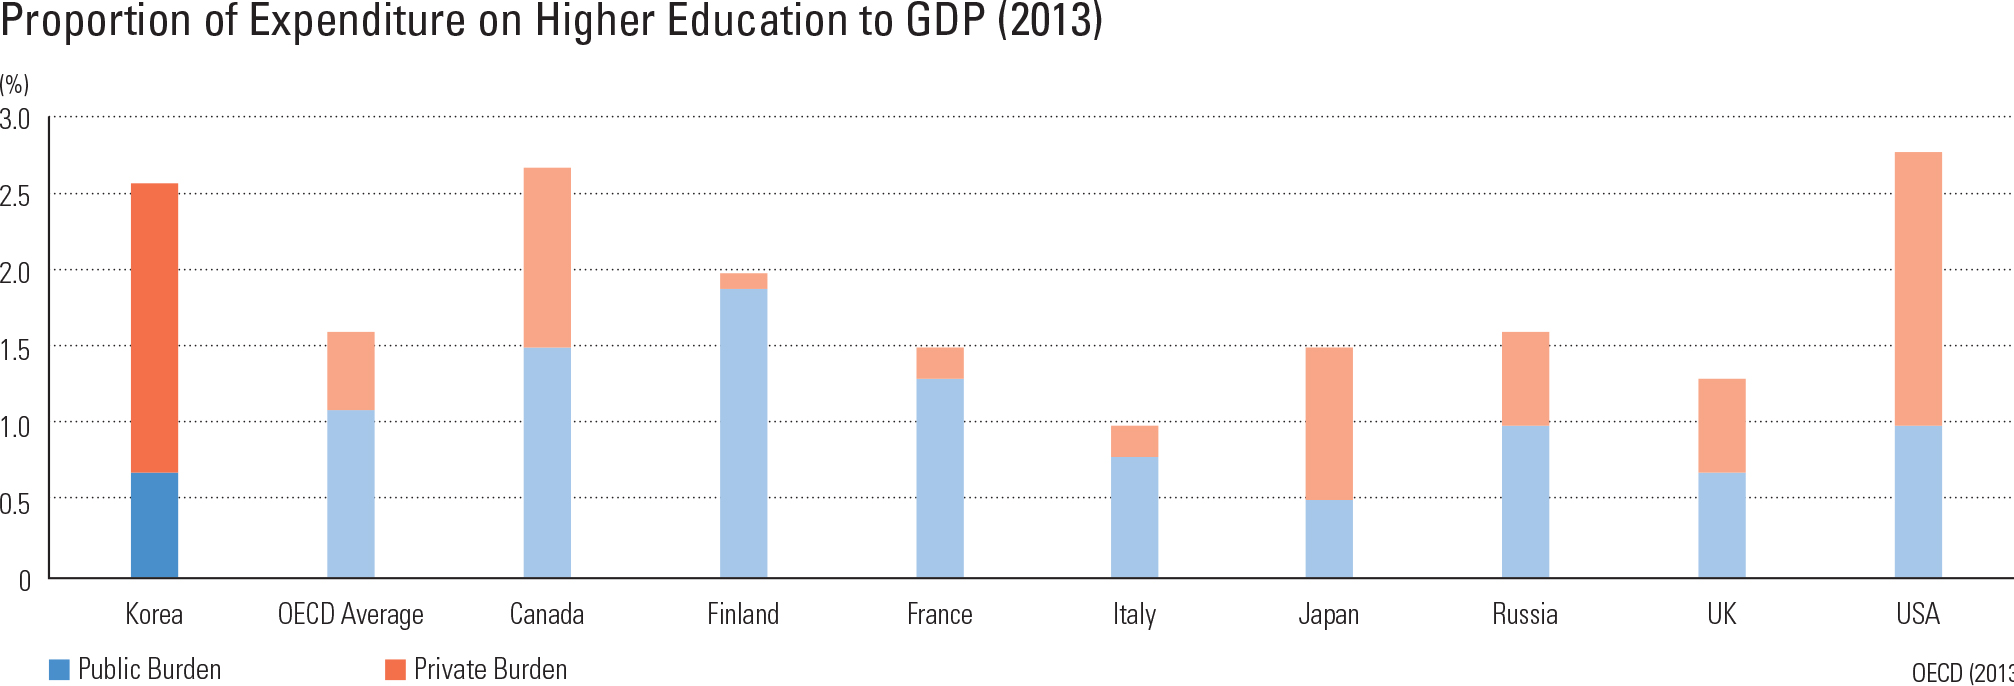 Proportion of Expenditure on Higher Education to GDP (2013)